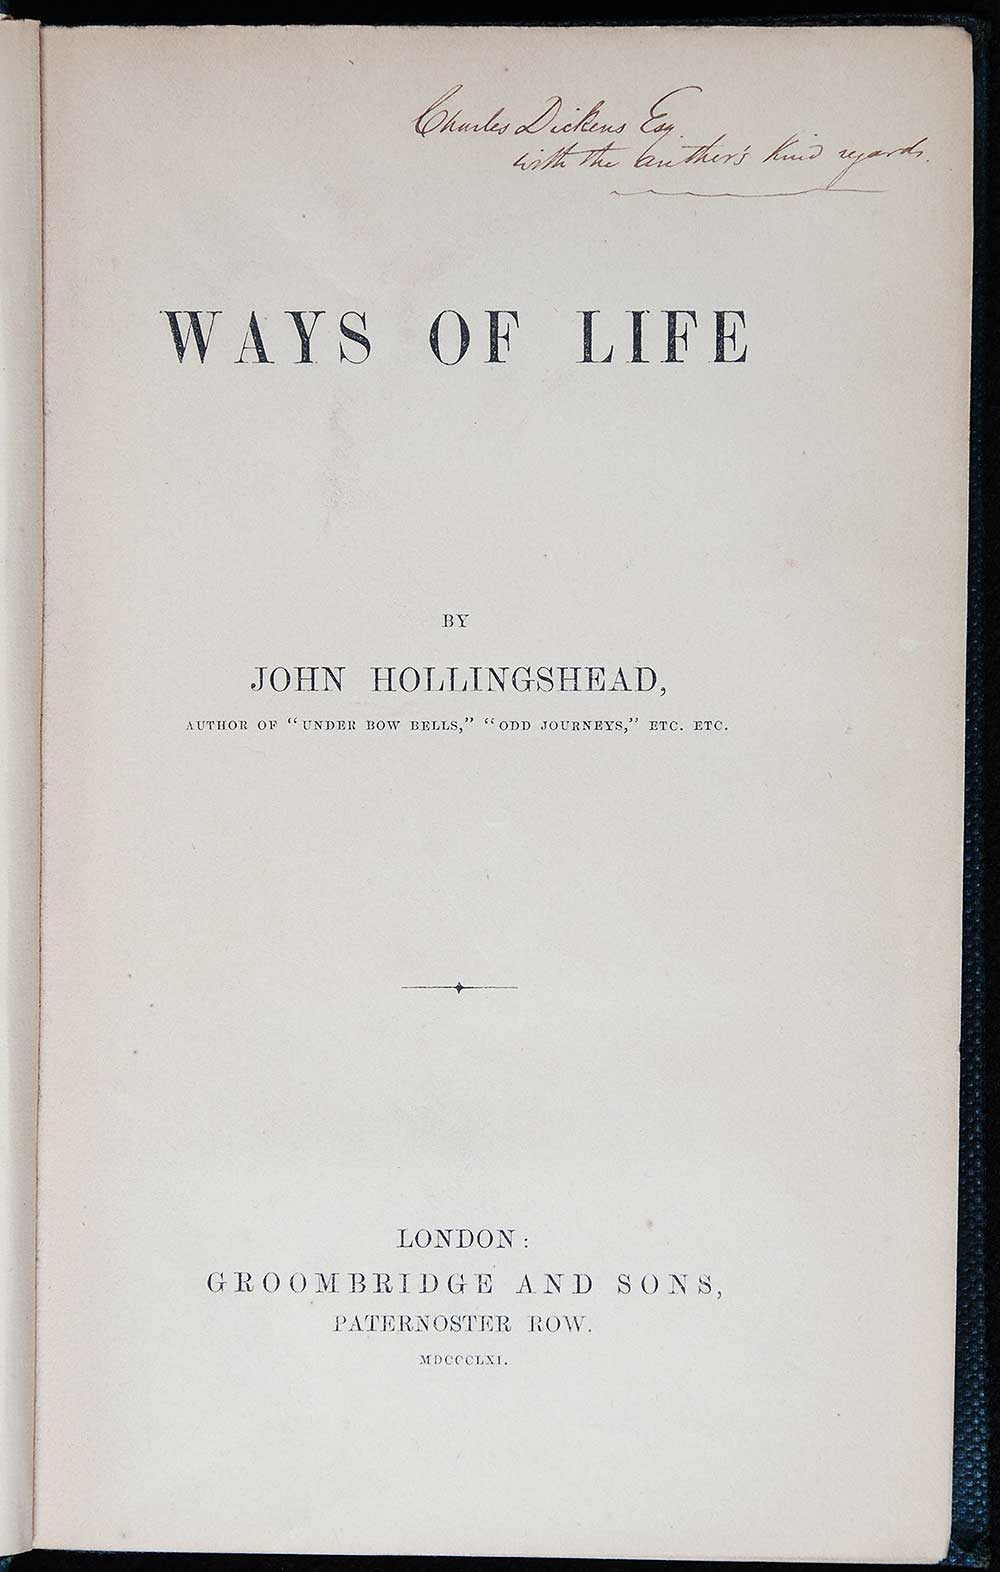 John Hollingshead. <em>Ways of life</em>. London: Groombridge and Sons, 1861.